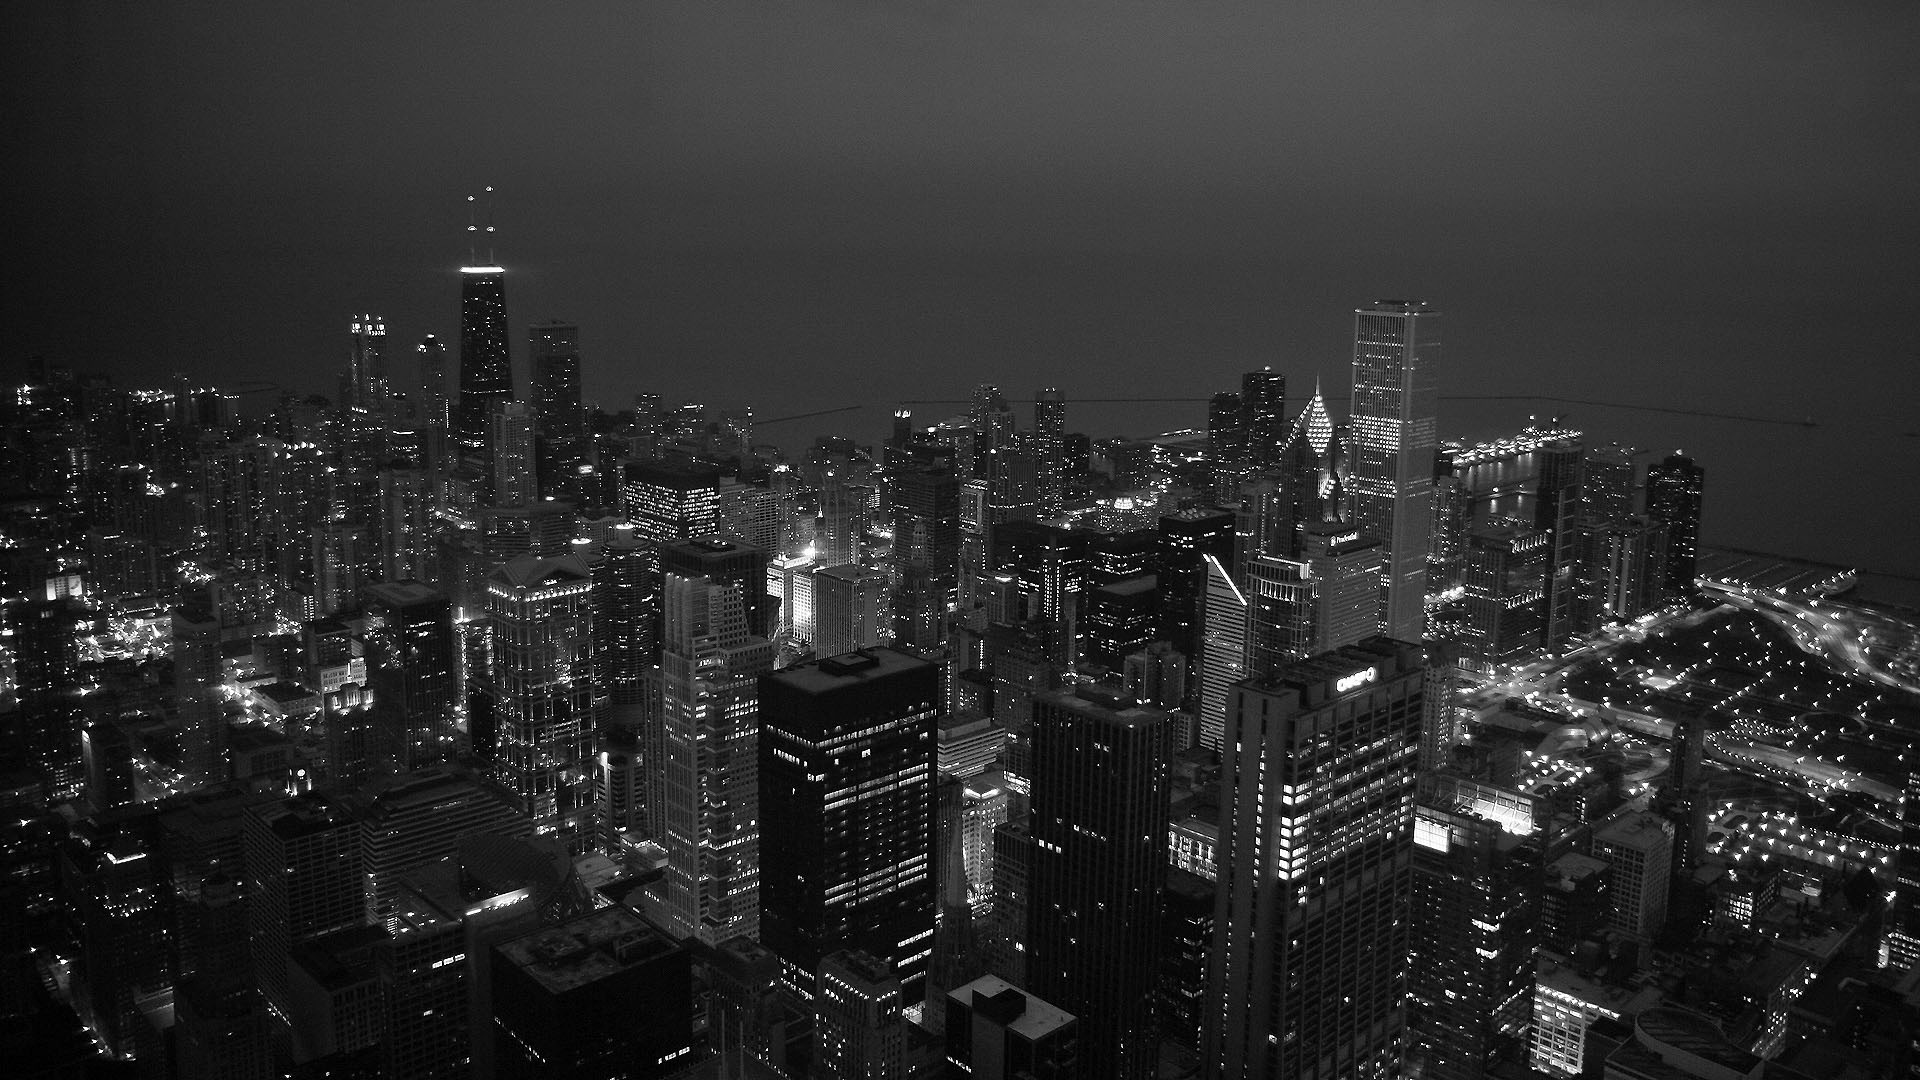 Cool-Black-And-White-Resolution-1920x1080-Desktop-Backgrounds-1920%C3%971080-wallpaper-wp3604354